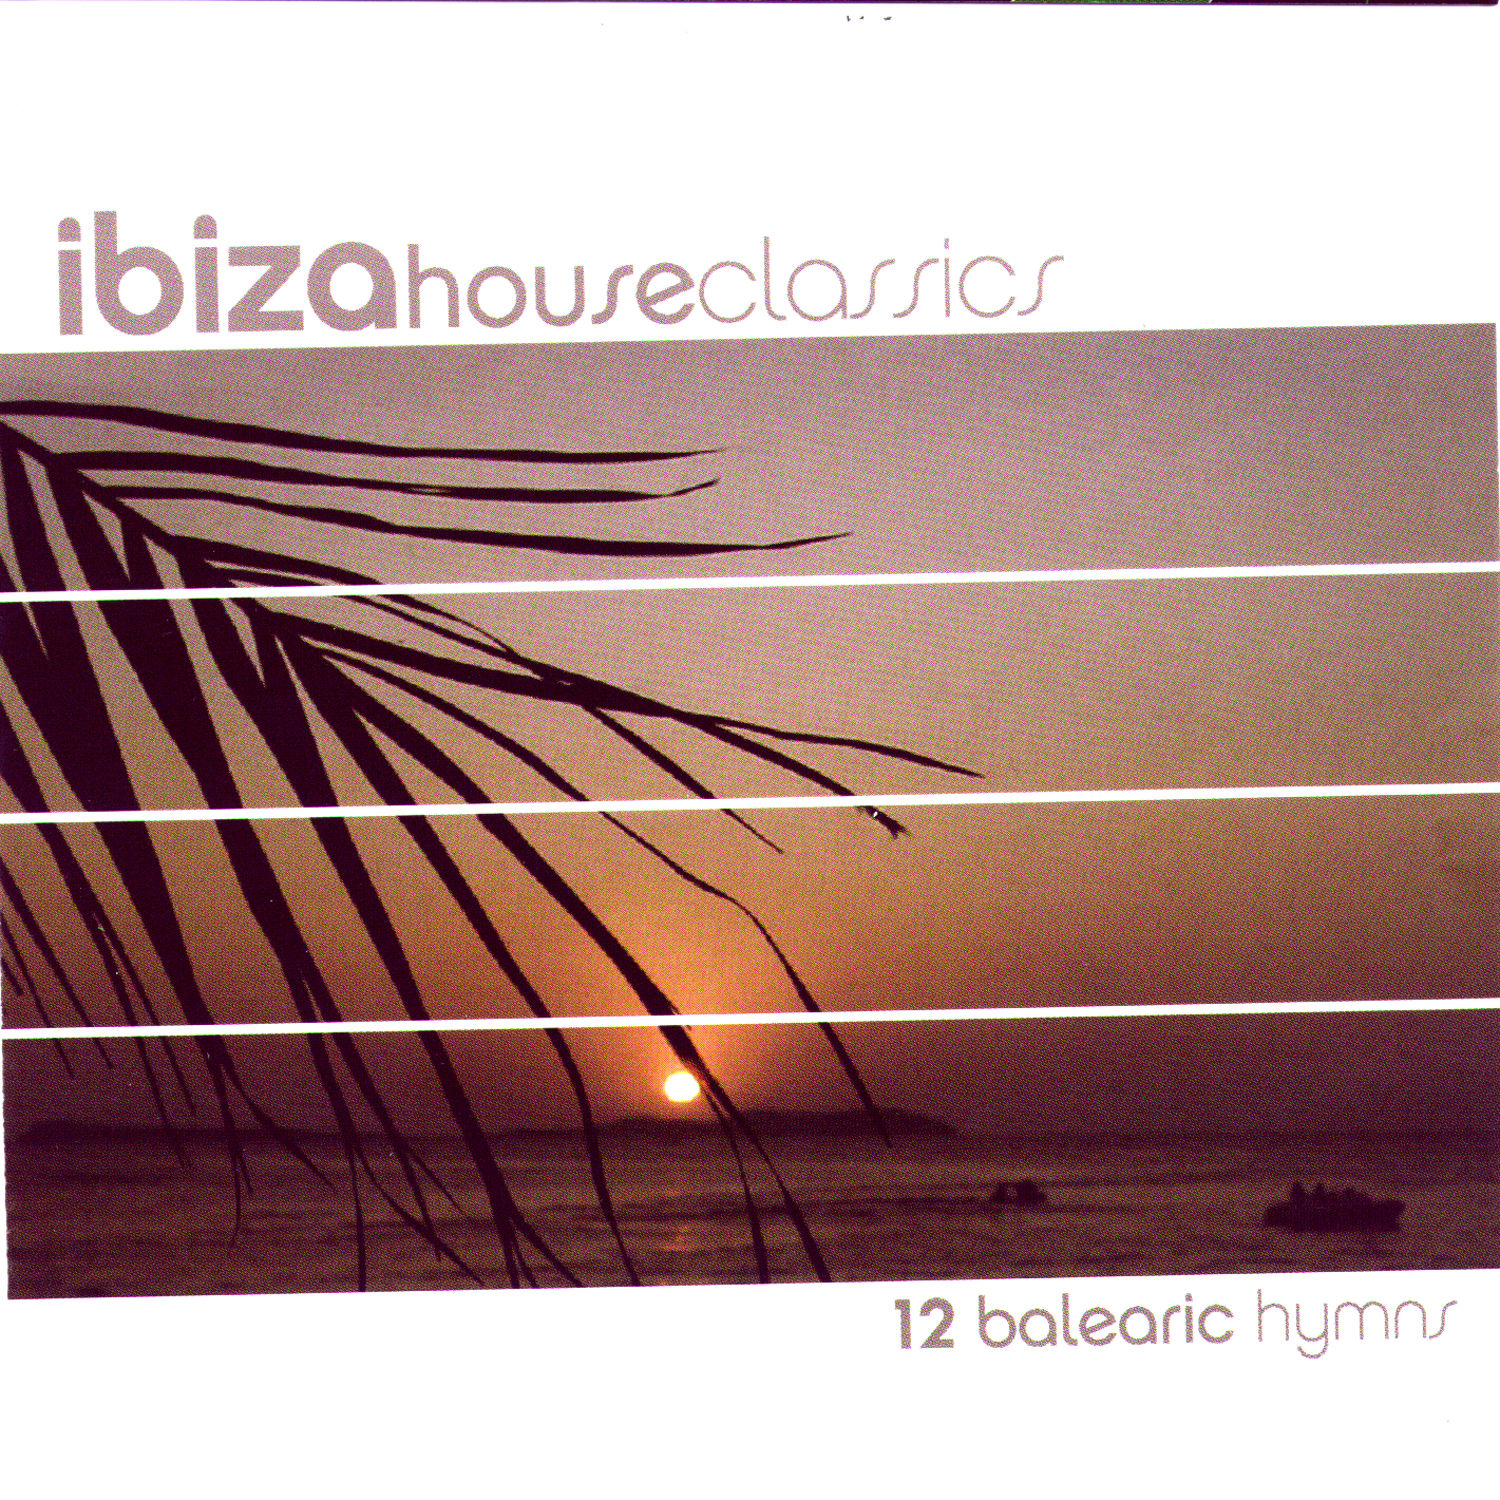 2003 ibiza house classics various artists 39 39 flac for Classic ibiza house tracks